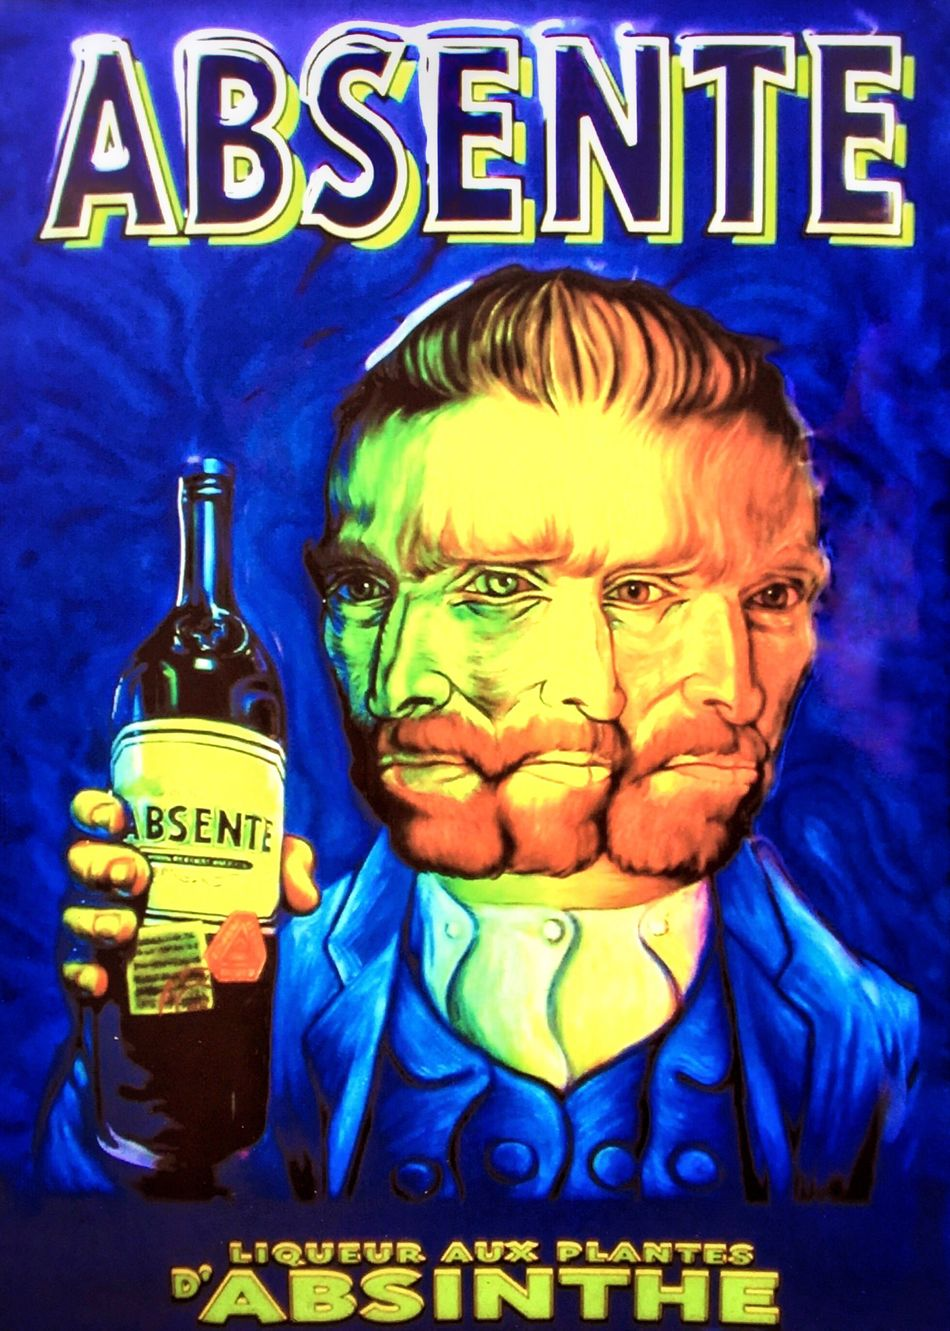 Man People Day One Person Absente Beard Blue Poster Absinthe Liquor Faces Of EyeEm Rome Bottle Glass Wine Suit Bestoftheday EyeEm Best Shots Eyes Old Monochrome Hello World Taking Photos First Eyeem Photo EyeEmNewHere